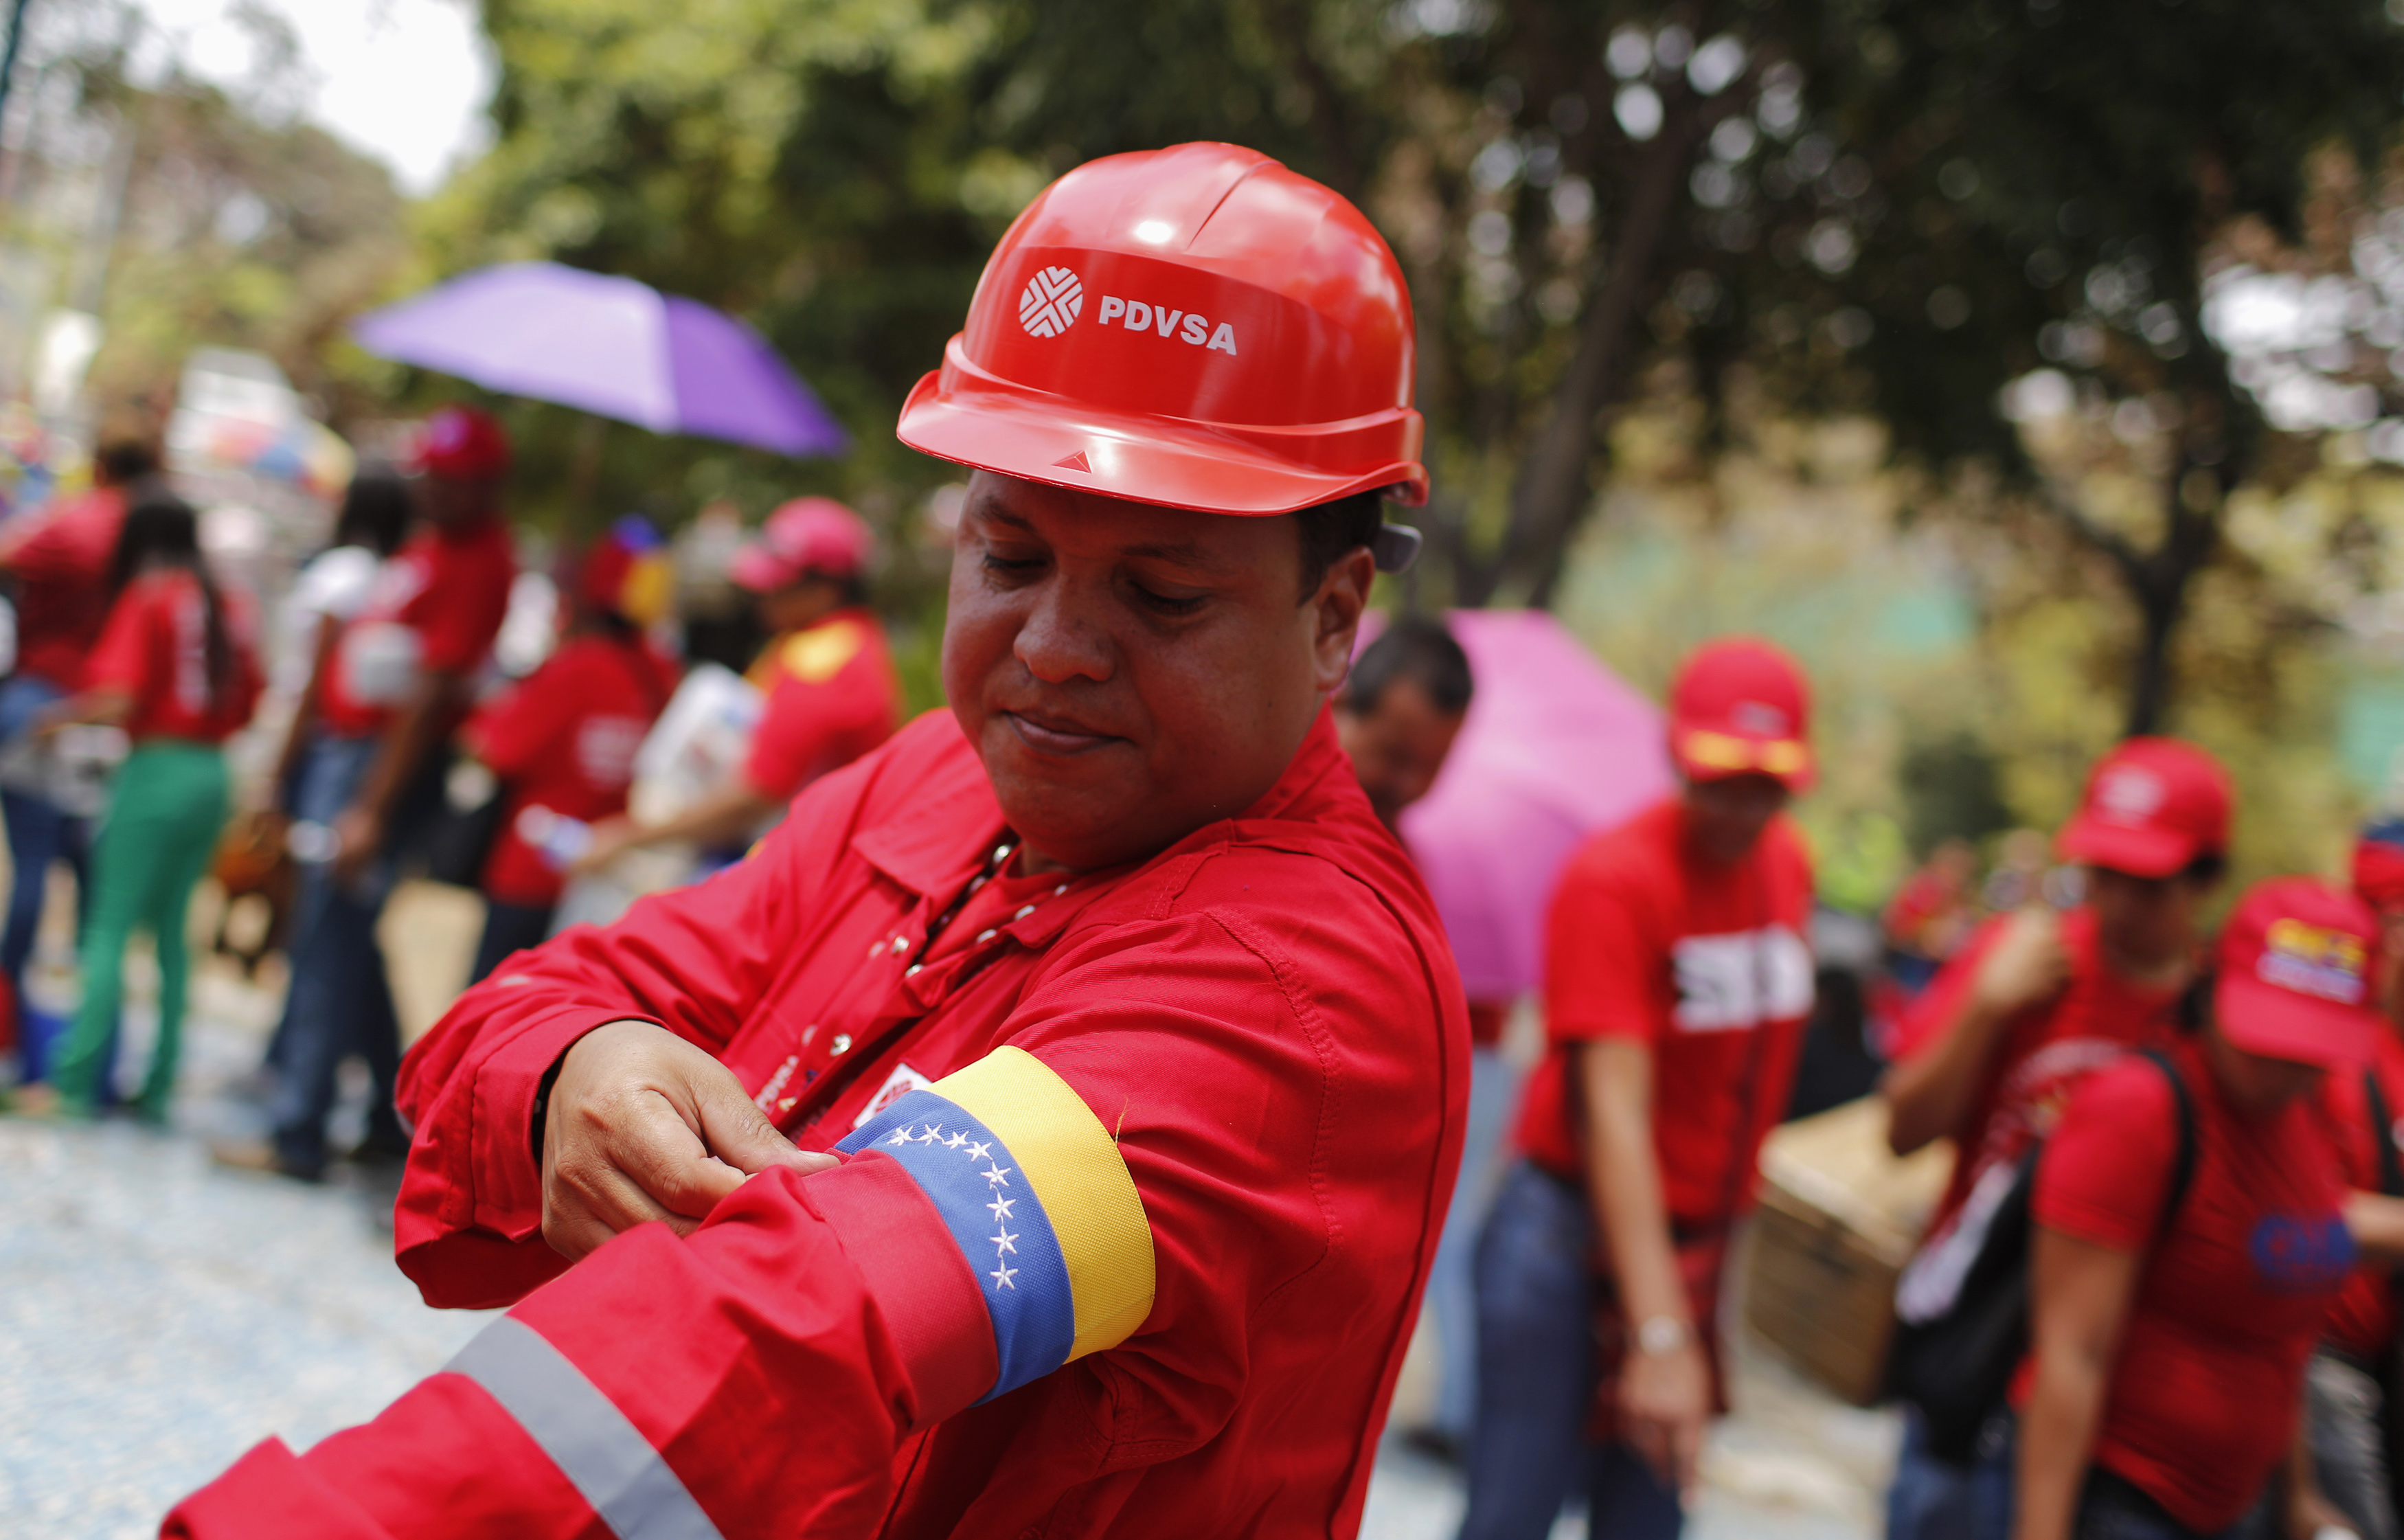 A worker of state-run oil company PDVSA arranges an armband in the colors of Venezuela's flag, at the military academy in Caracas March 10, 2013. Venezuelans of all stripes called on Saturday for a quick presidential election as acting President Nicolas Maduro tries to benefit from an emotional outpouring for his late mentor, Hugo Chavez, and step into his shoes. REUTERS/Tomas Bravo (VENEZUELA - Tags: POLITICS BUSINESS EMPLOYMENT)